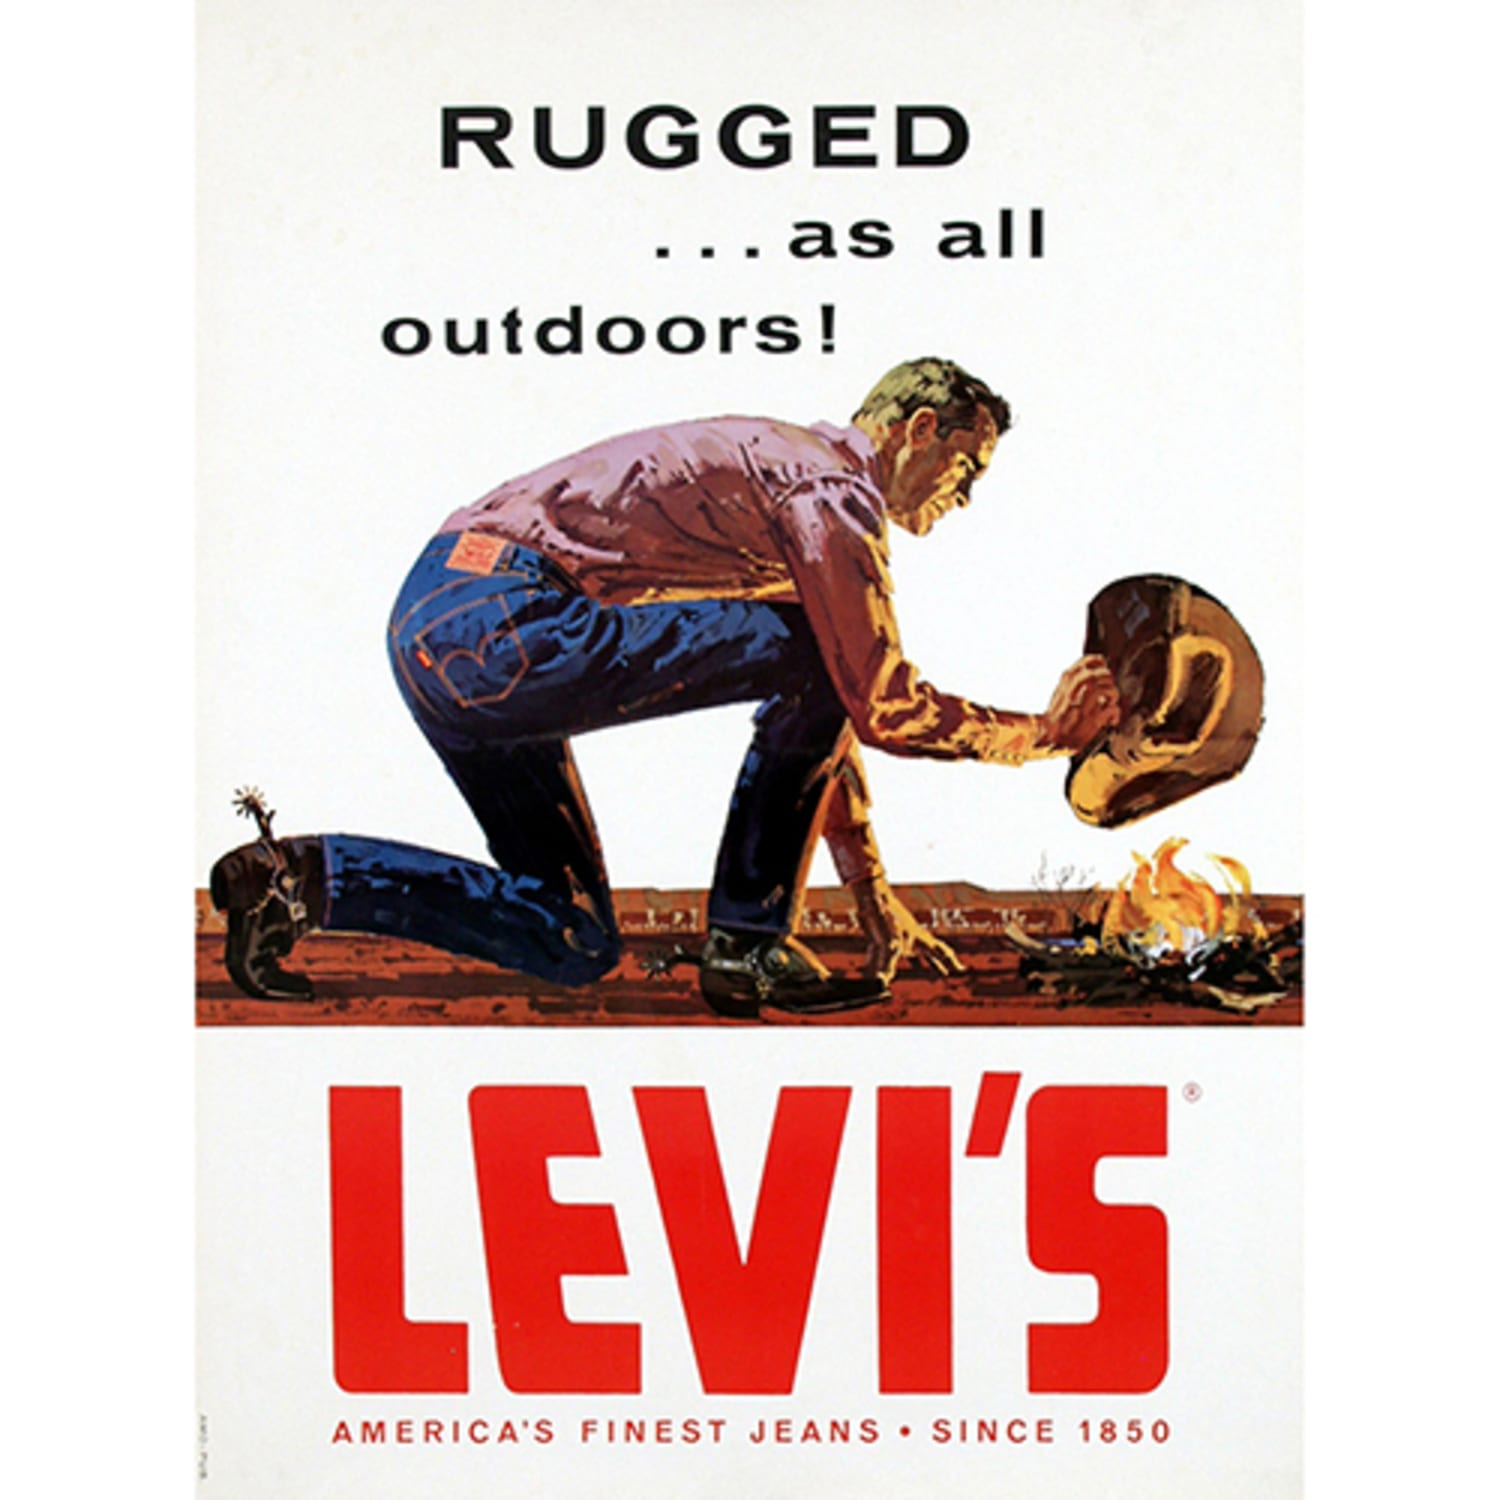 Man in cowboy hat putting out a fire in classic American ad for Levis